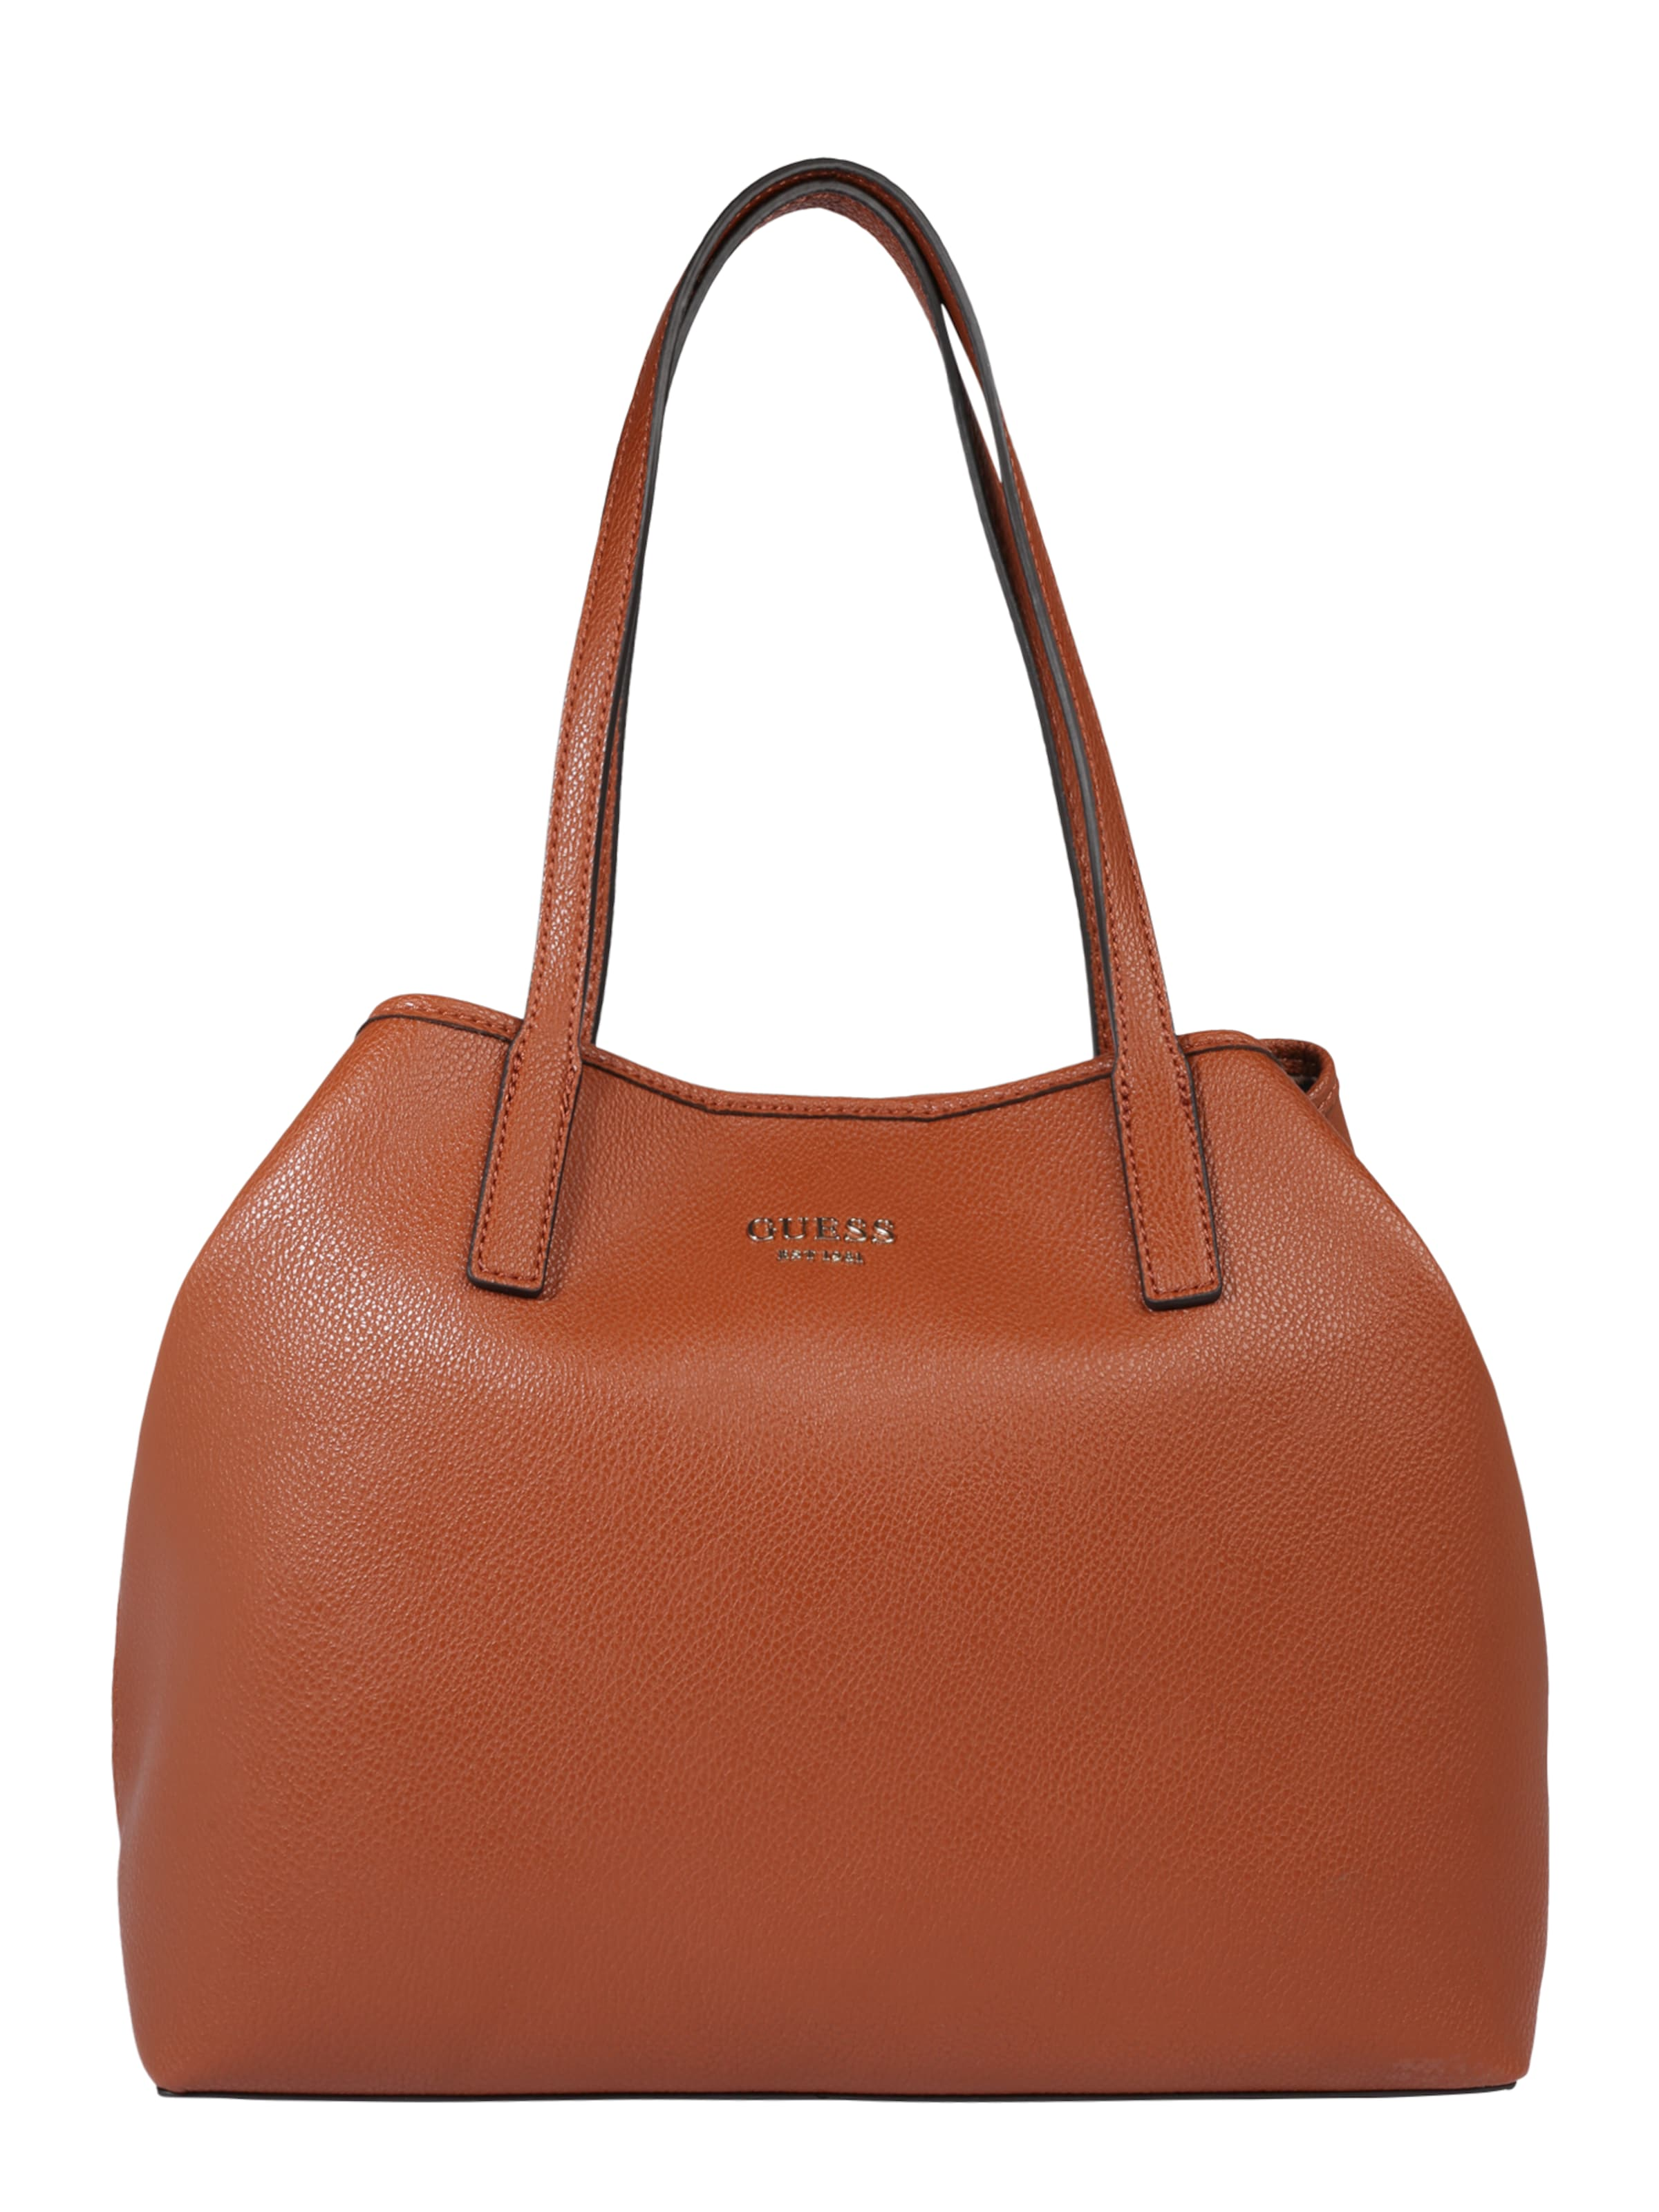 GUESS Tote Bag VIKKY in cognac ABOUT YOU